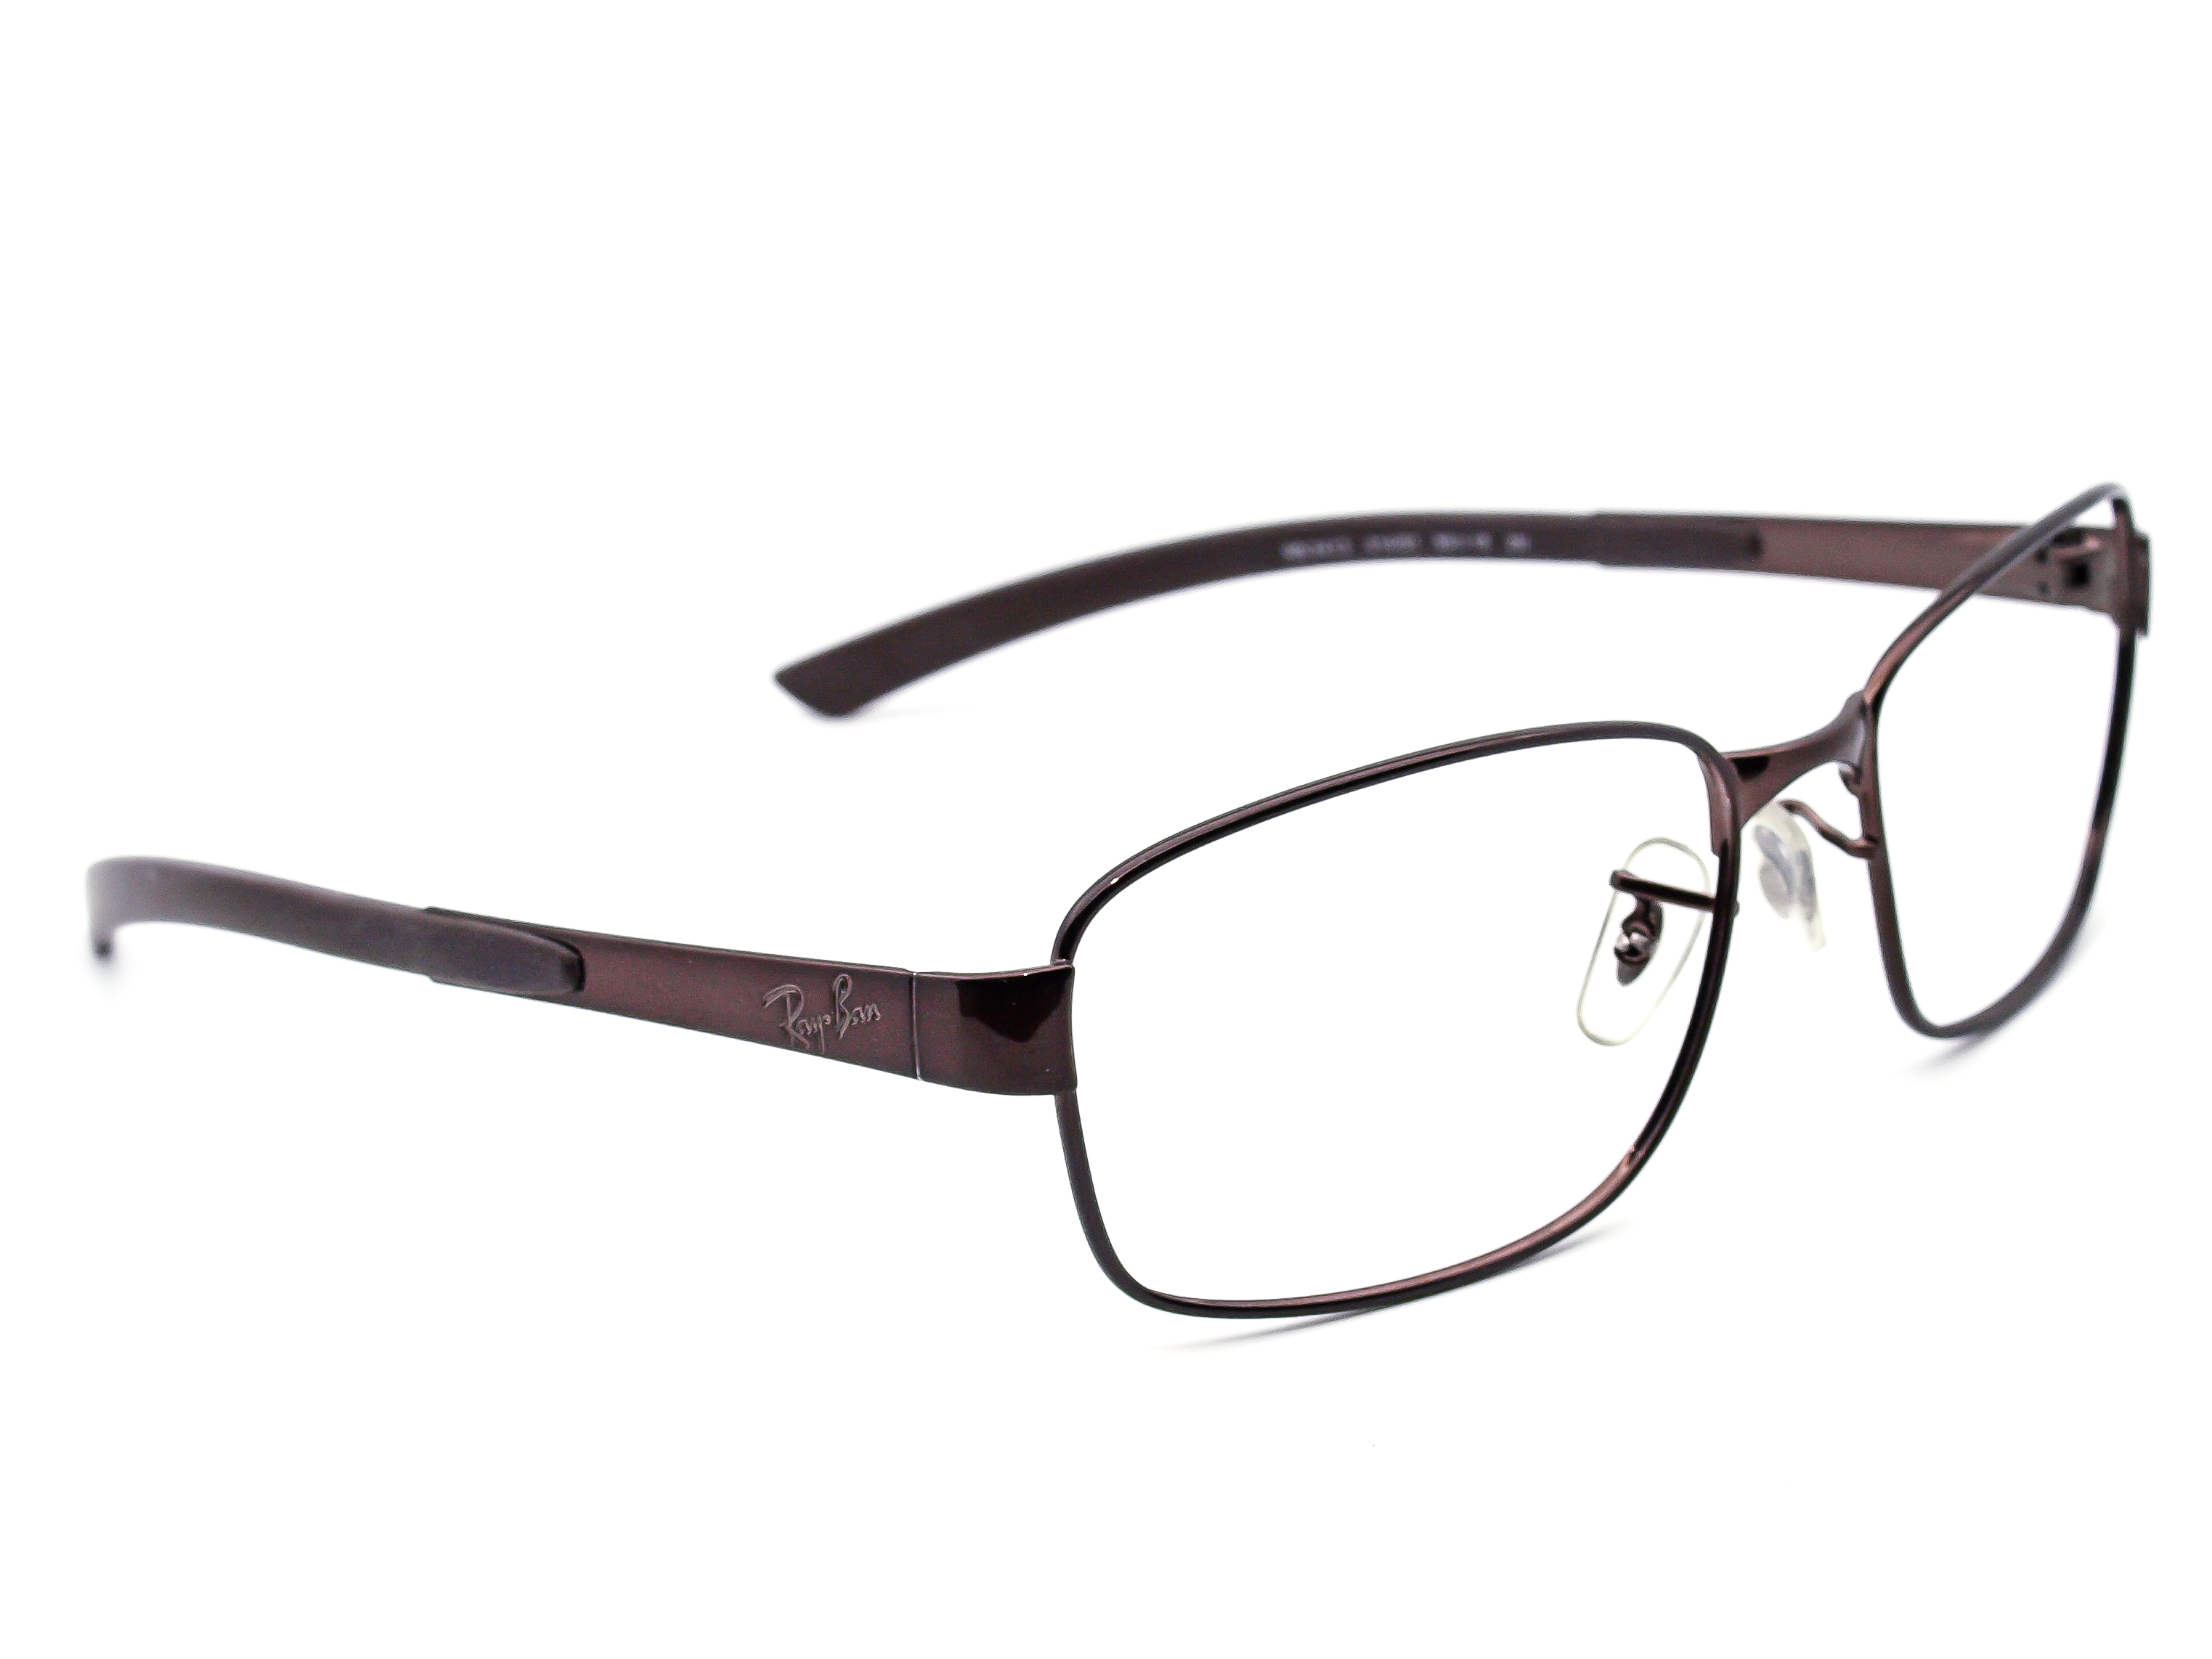 Ray Ban RB 3413 014/51 Sunglasses Frame Only